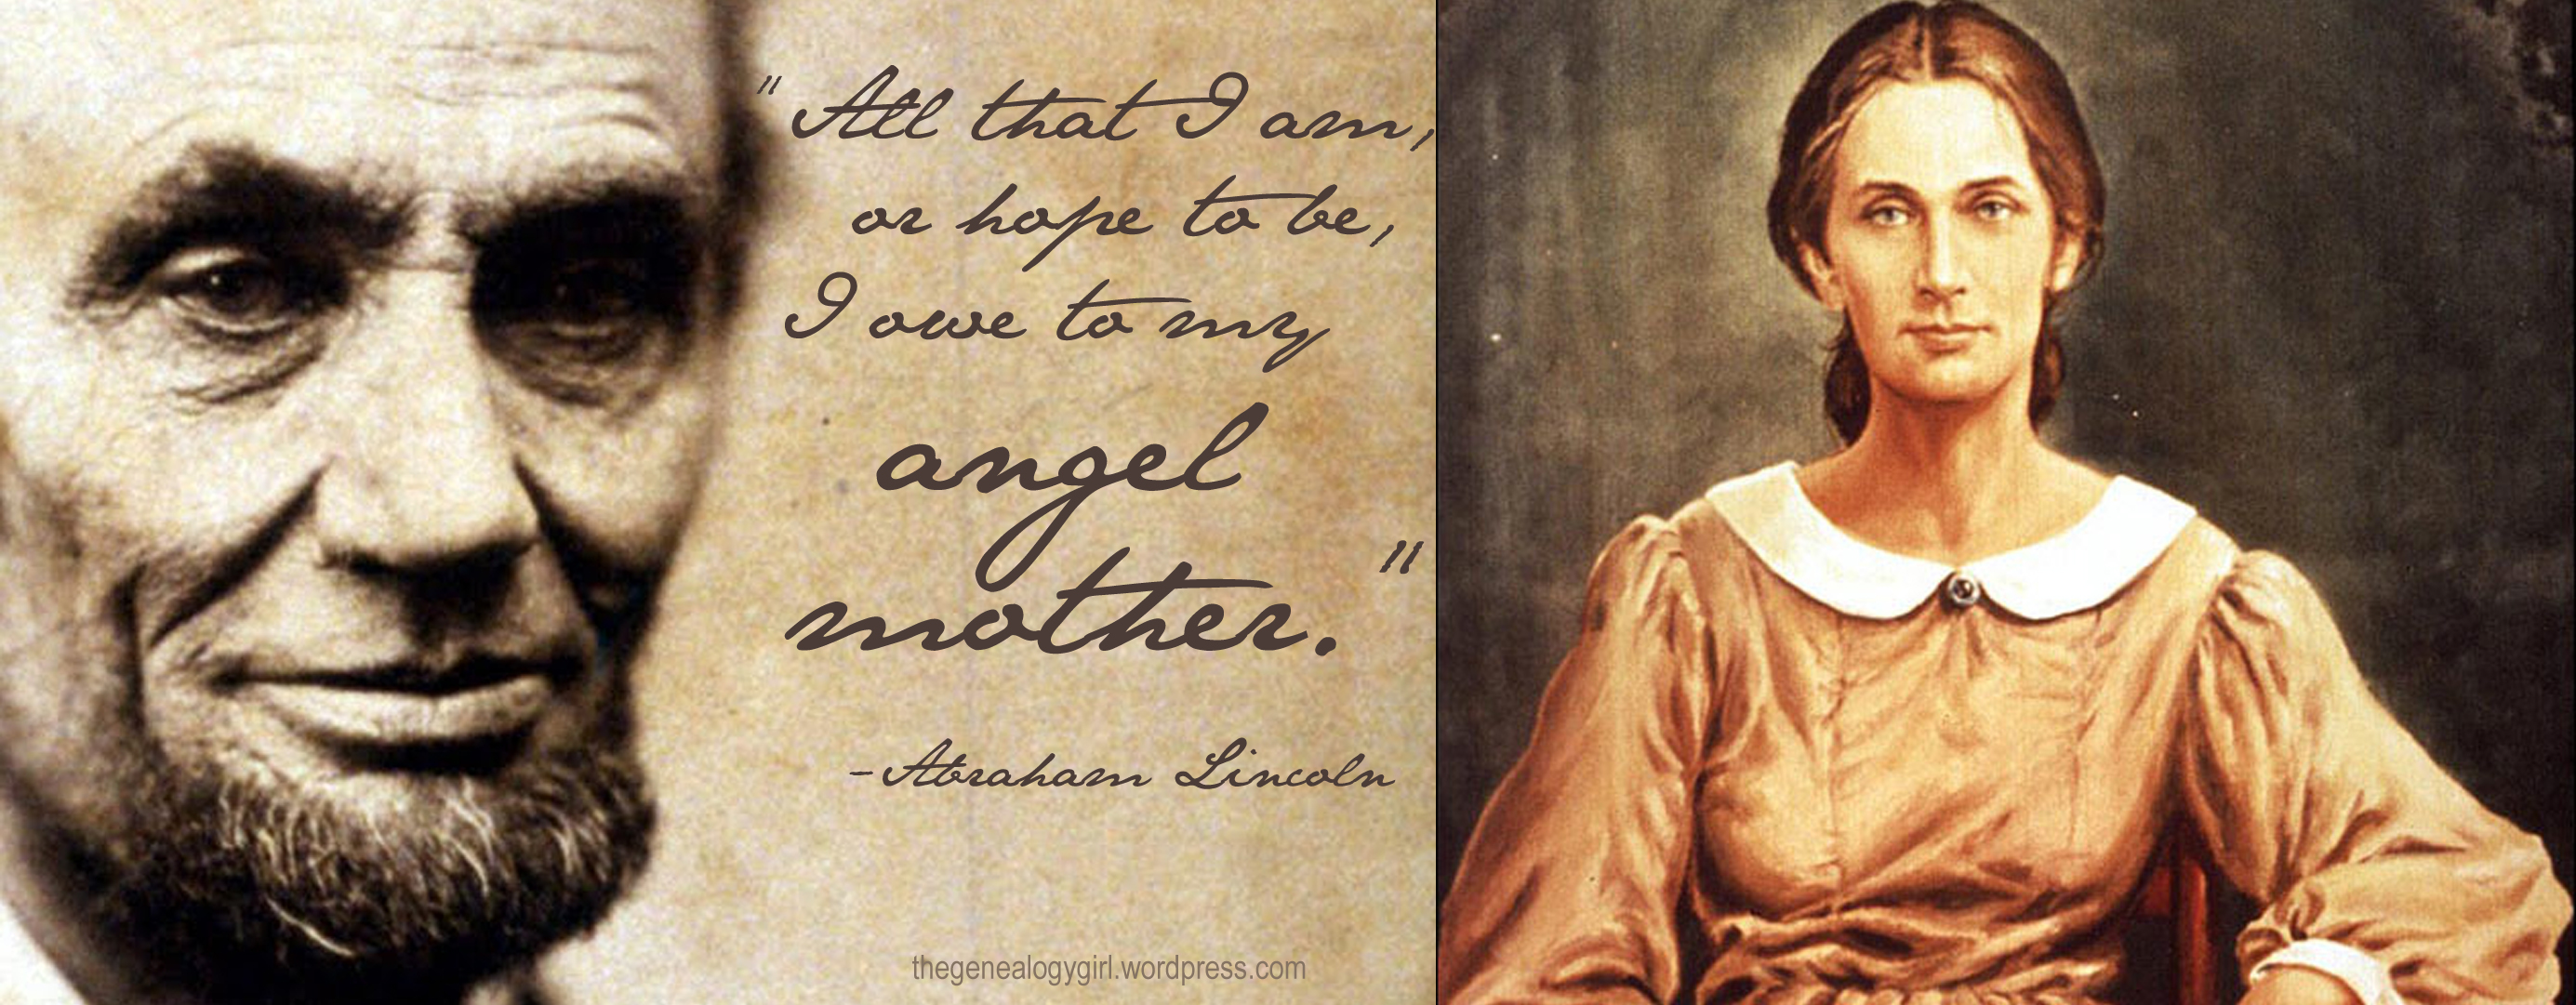 mother quotation abraham lincoln